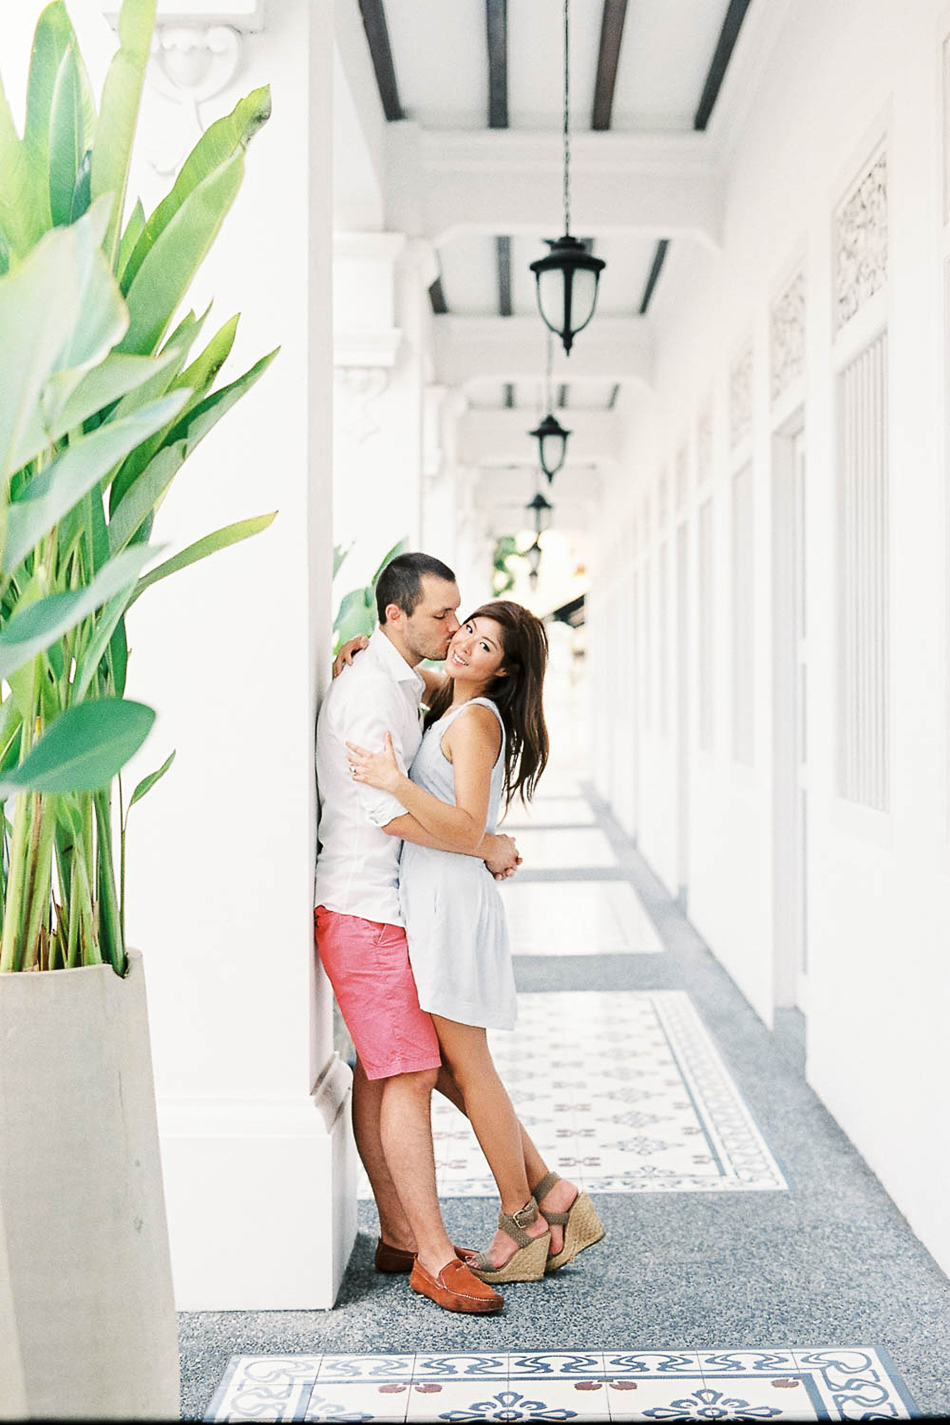 engagement-photographer-singapore-film-photographer-chen-sands-loridimitri-CSPBLOG-8.jpg